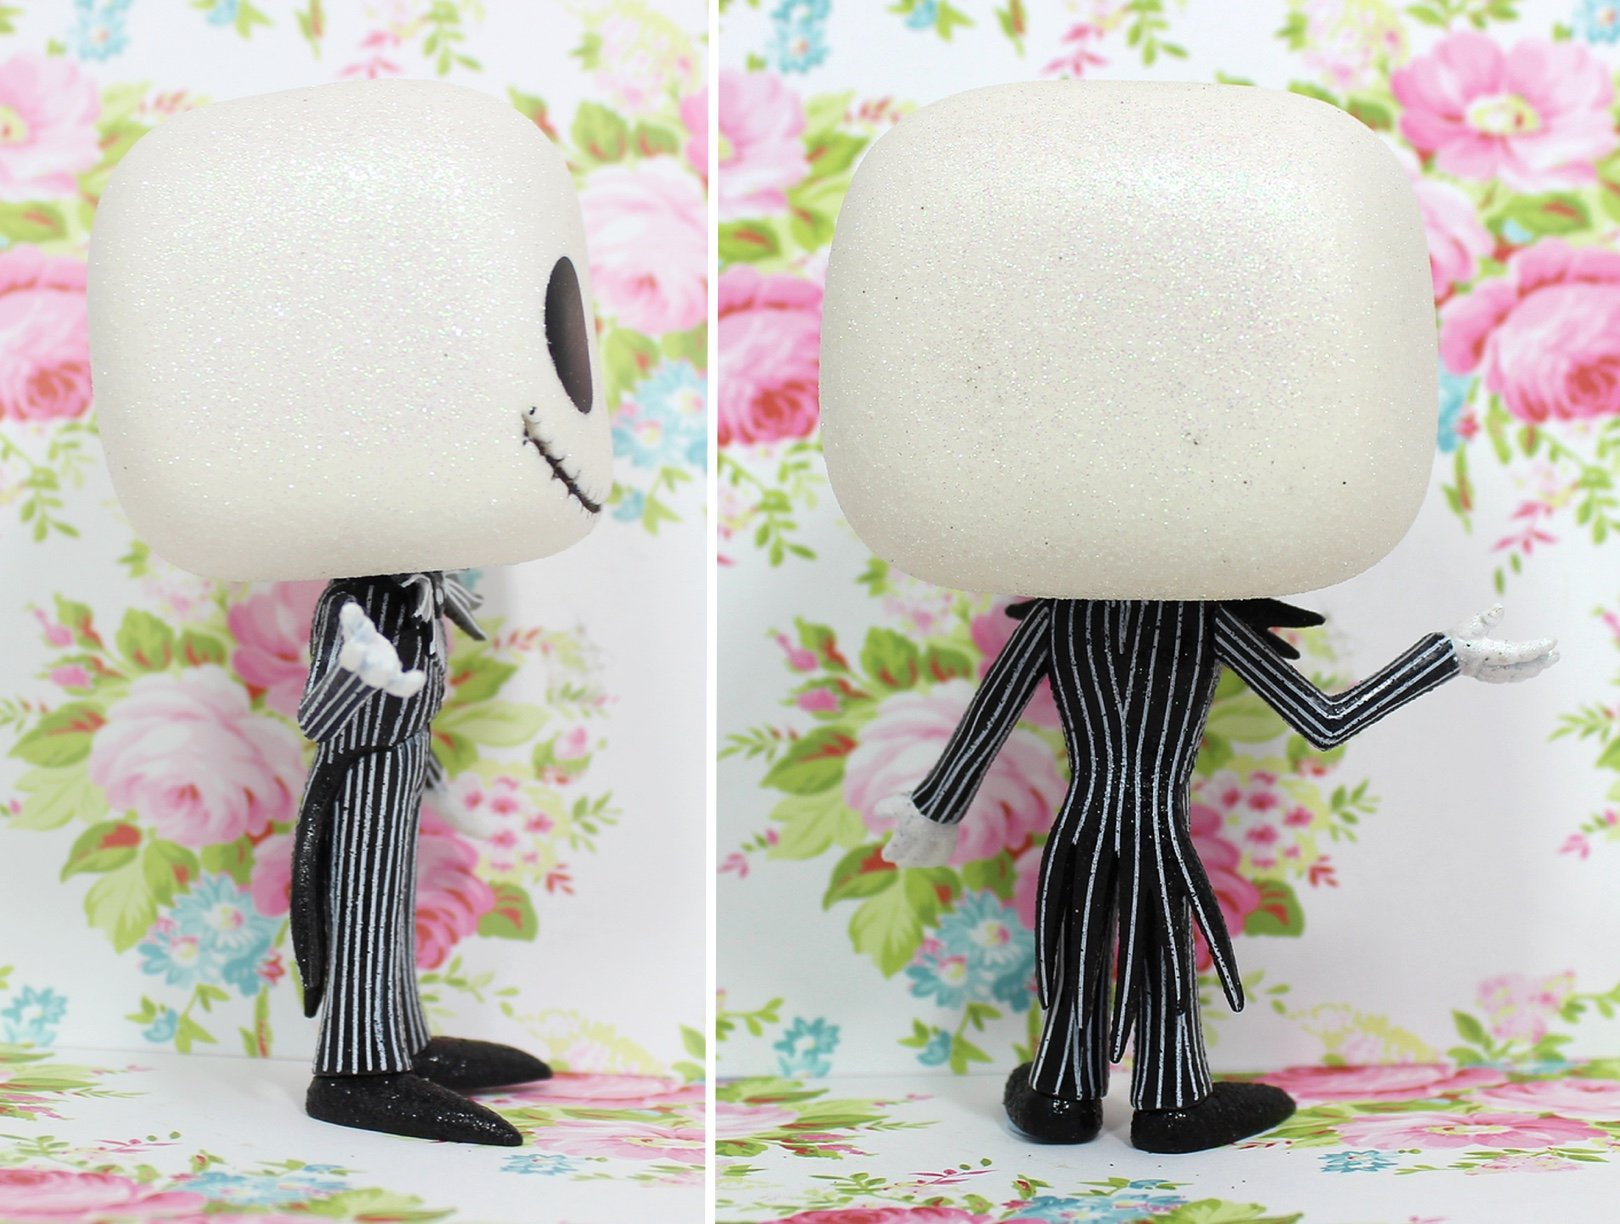 Funko Time Jack Skellington diamond collection